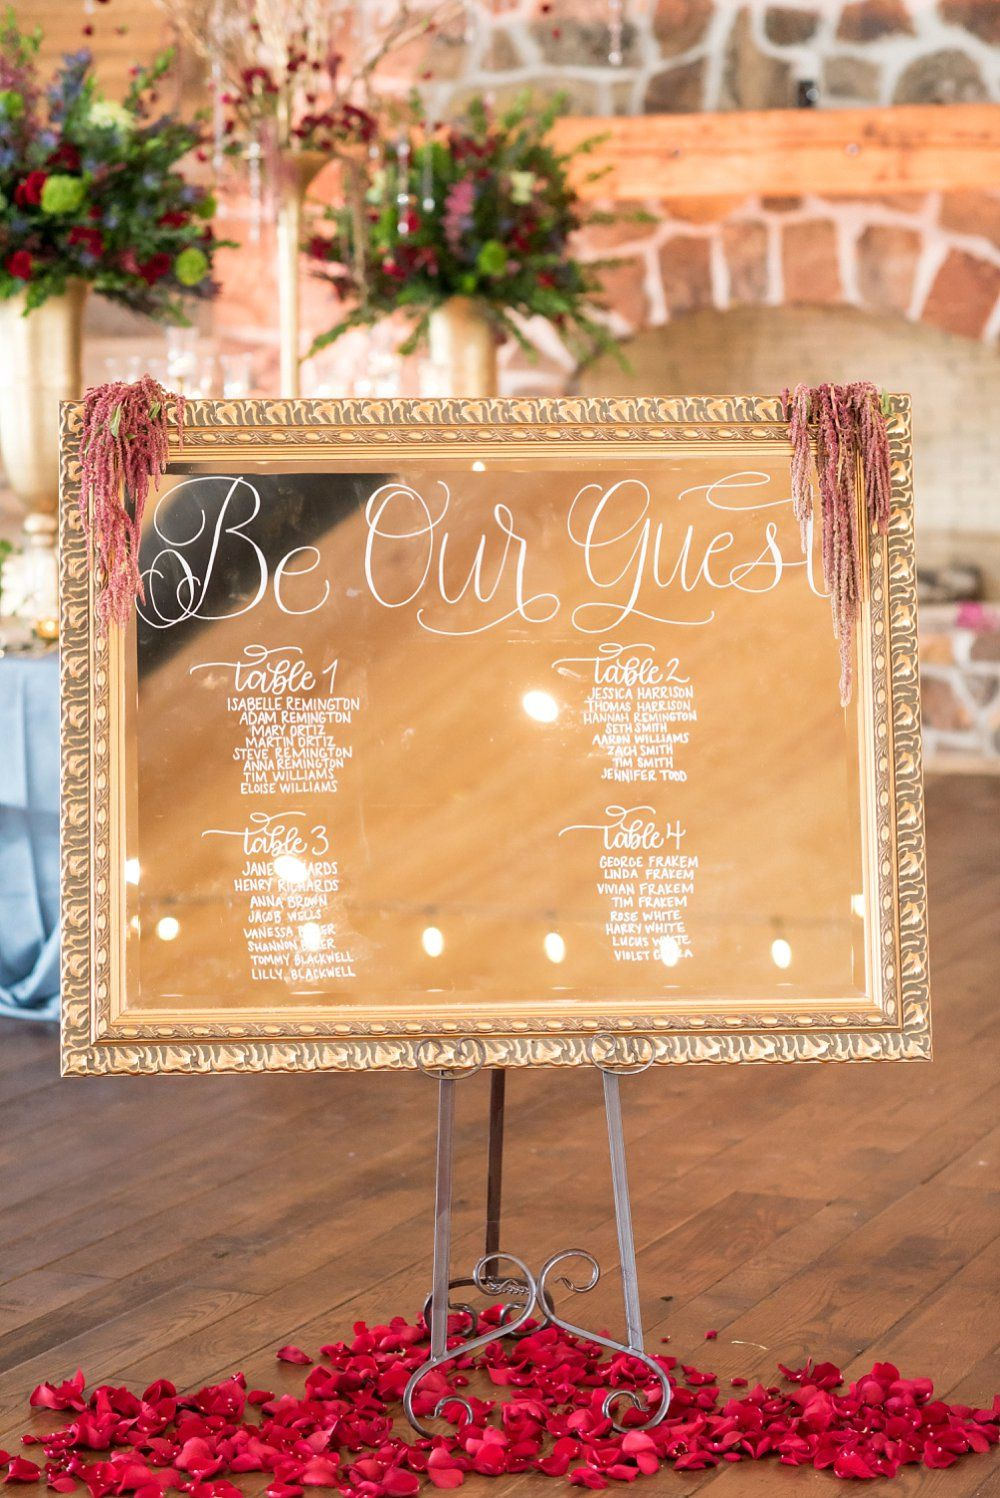 Be Our Guest Mirror Sign | A Beauty and the Beast Wedding Inspiration - A  PRINCESS INSPIRED BLOG | Wedding mirror, Beauty and the beast, Beauty and  the beast theme